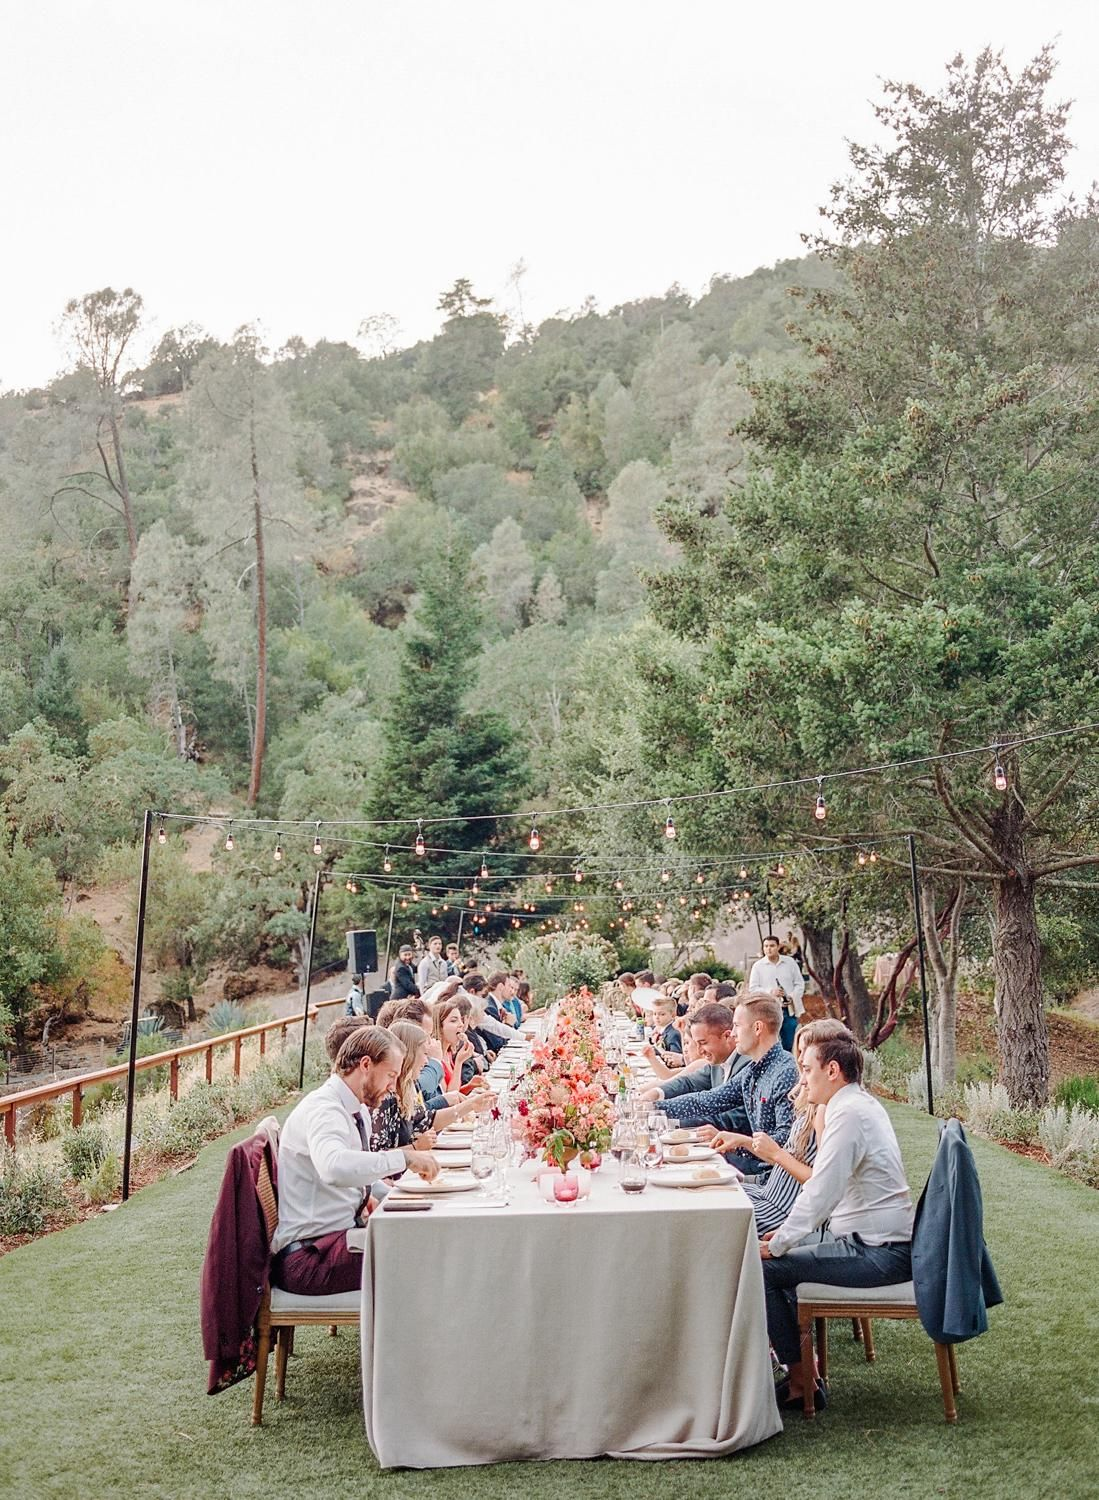 An Intimate Wedding in Napa Painted in Every Shade of Wine